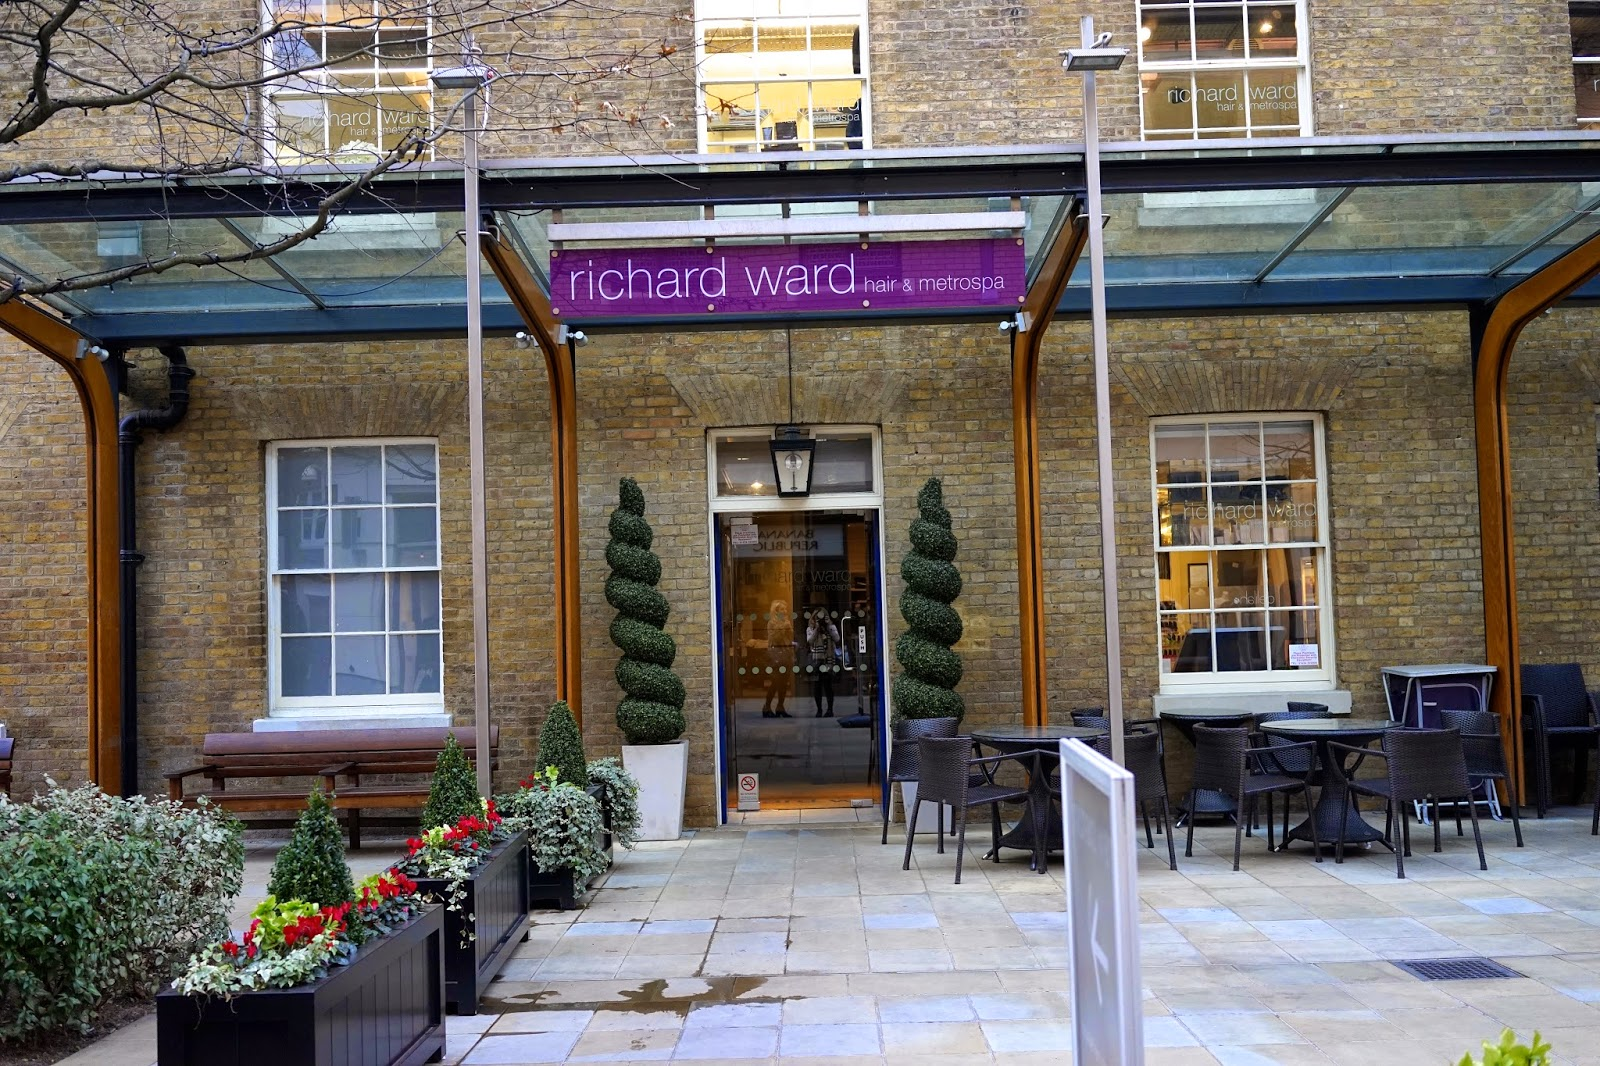 richard ward london